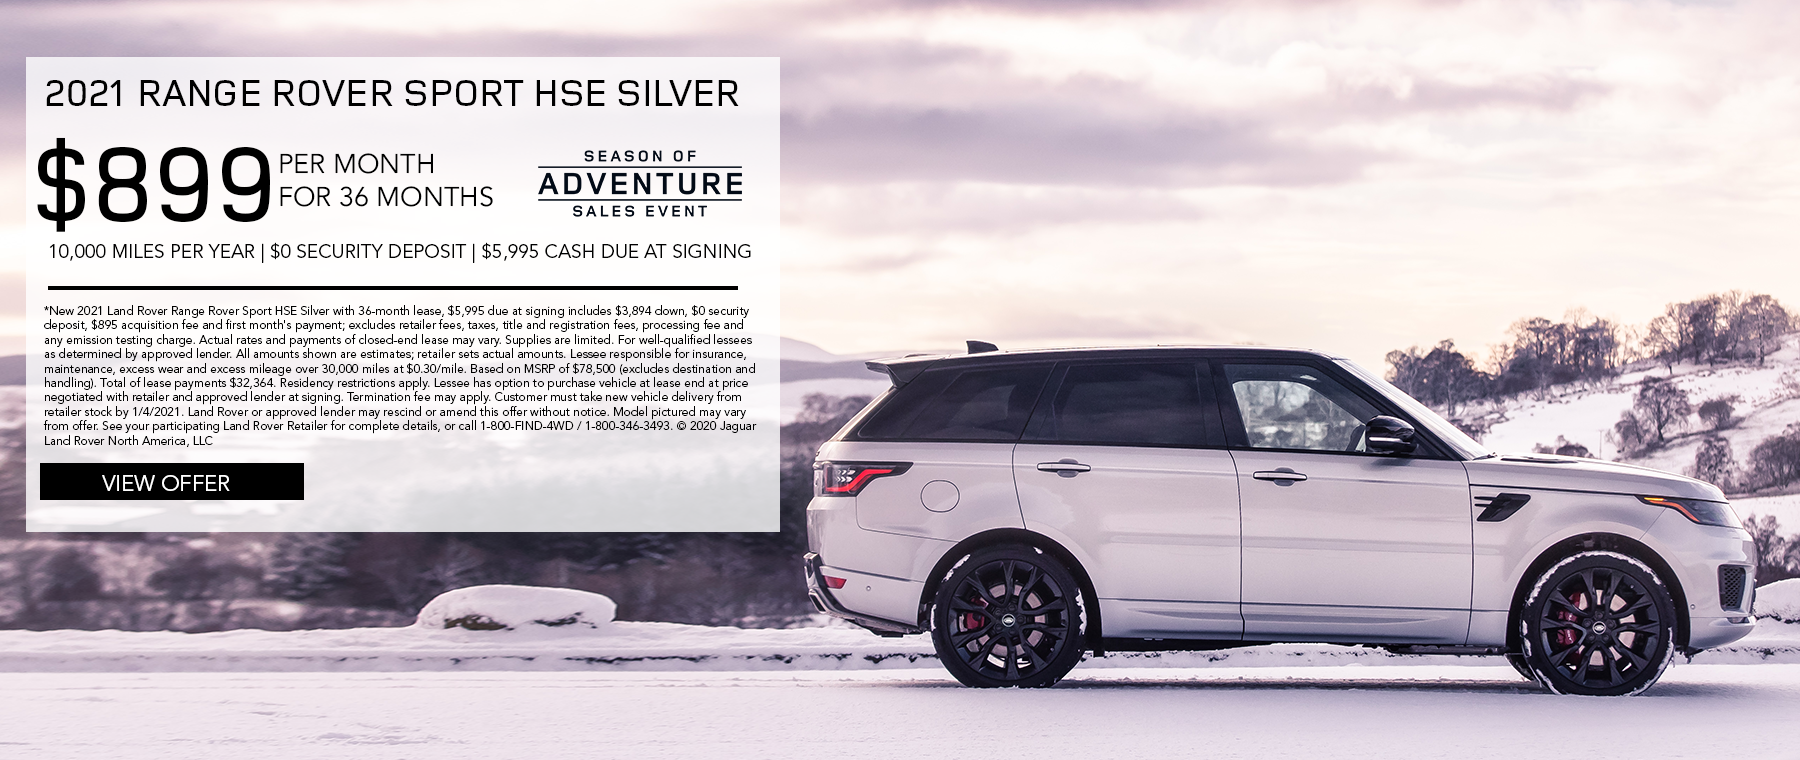 2020 RANGE ROVER SPORT HSE. $899 PER MONTH. 36 MONTH LEASE TERM. $5,995 CASH DUE AT SIGNING. $0 SECURITY DEPOSIT. 10,000 MILES PER YEAR. EXCLUDES RETAILER FEES, TAXES, TITLE AND REGISTRATION FEES, PROCESSING FEE AND ANY EMISSION TESTING CHARGE.ENDS 1/4/2021.